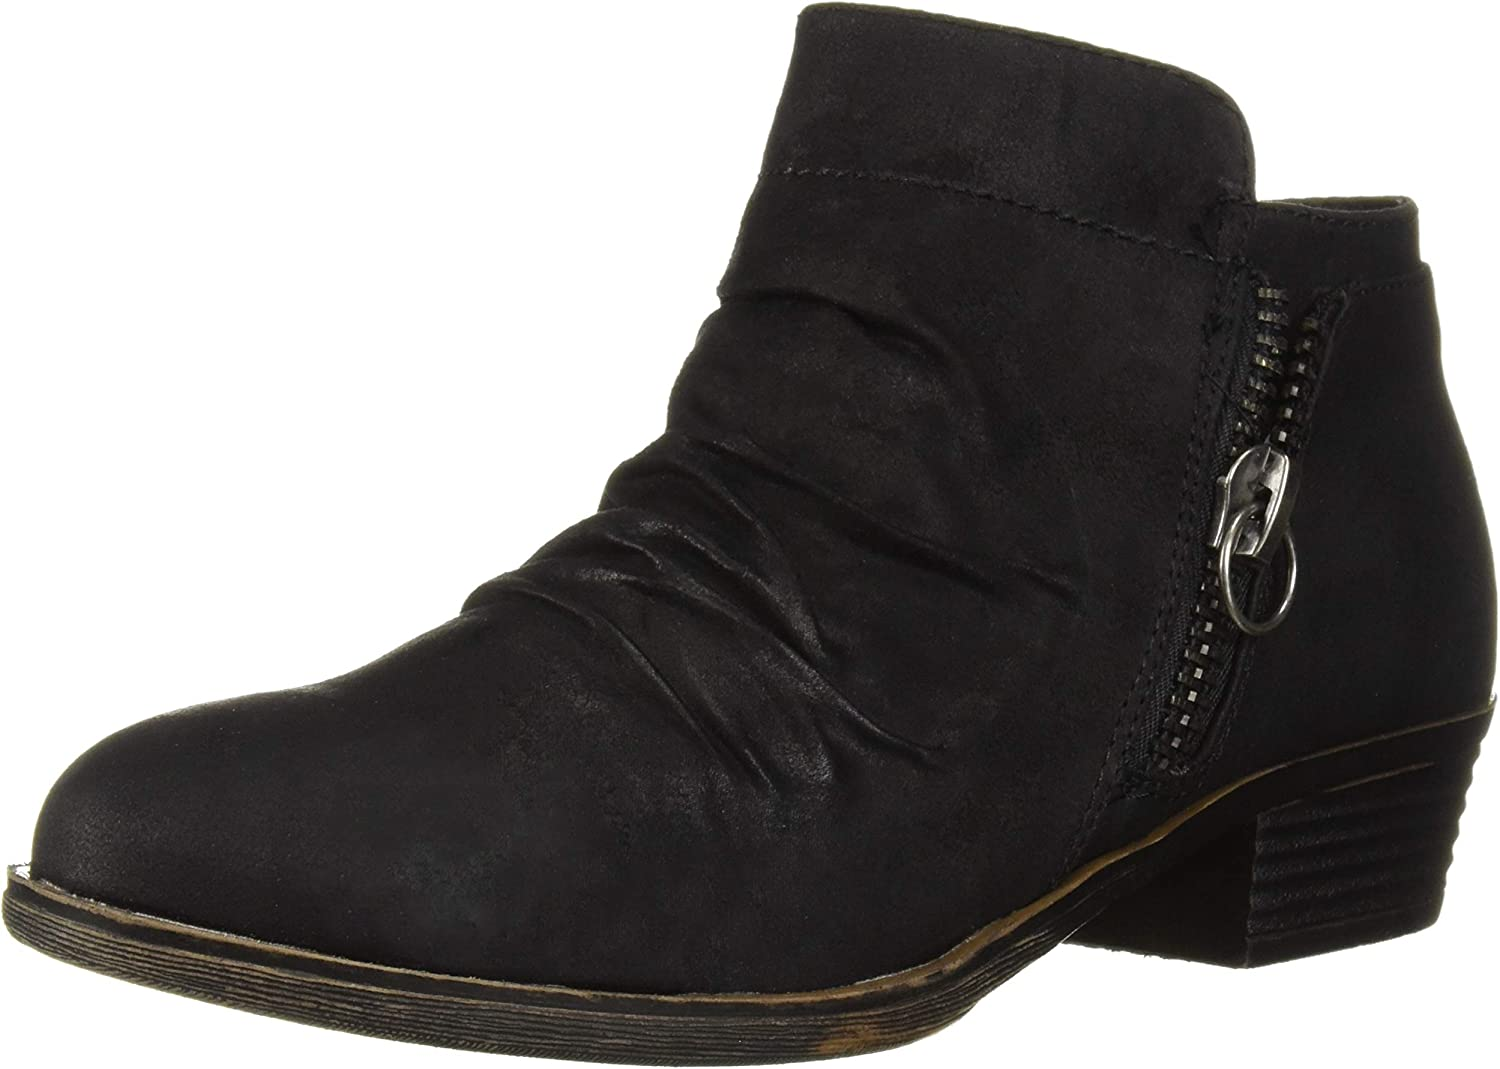 Sugar Trust Me Women's Casual Ruched Scrunch Ankle Bootie